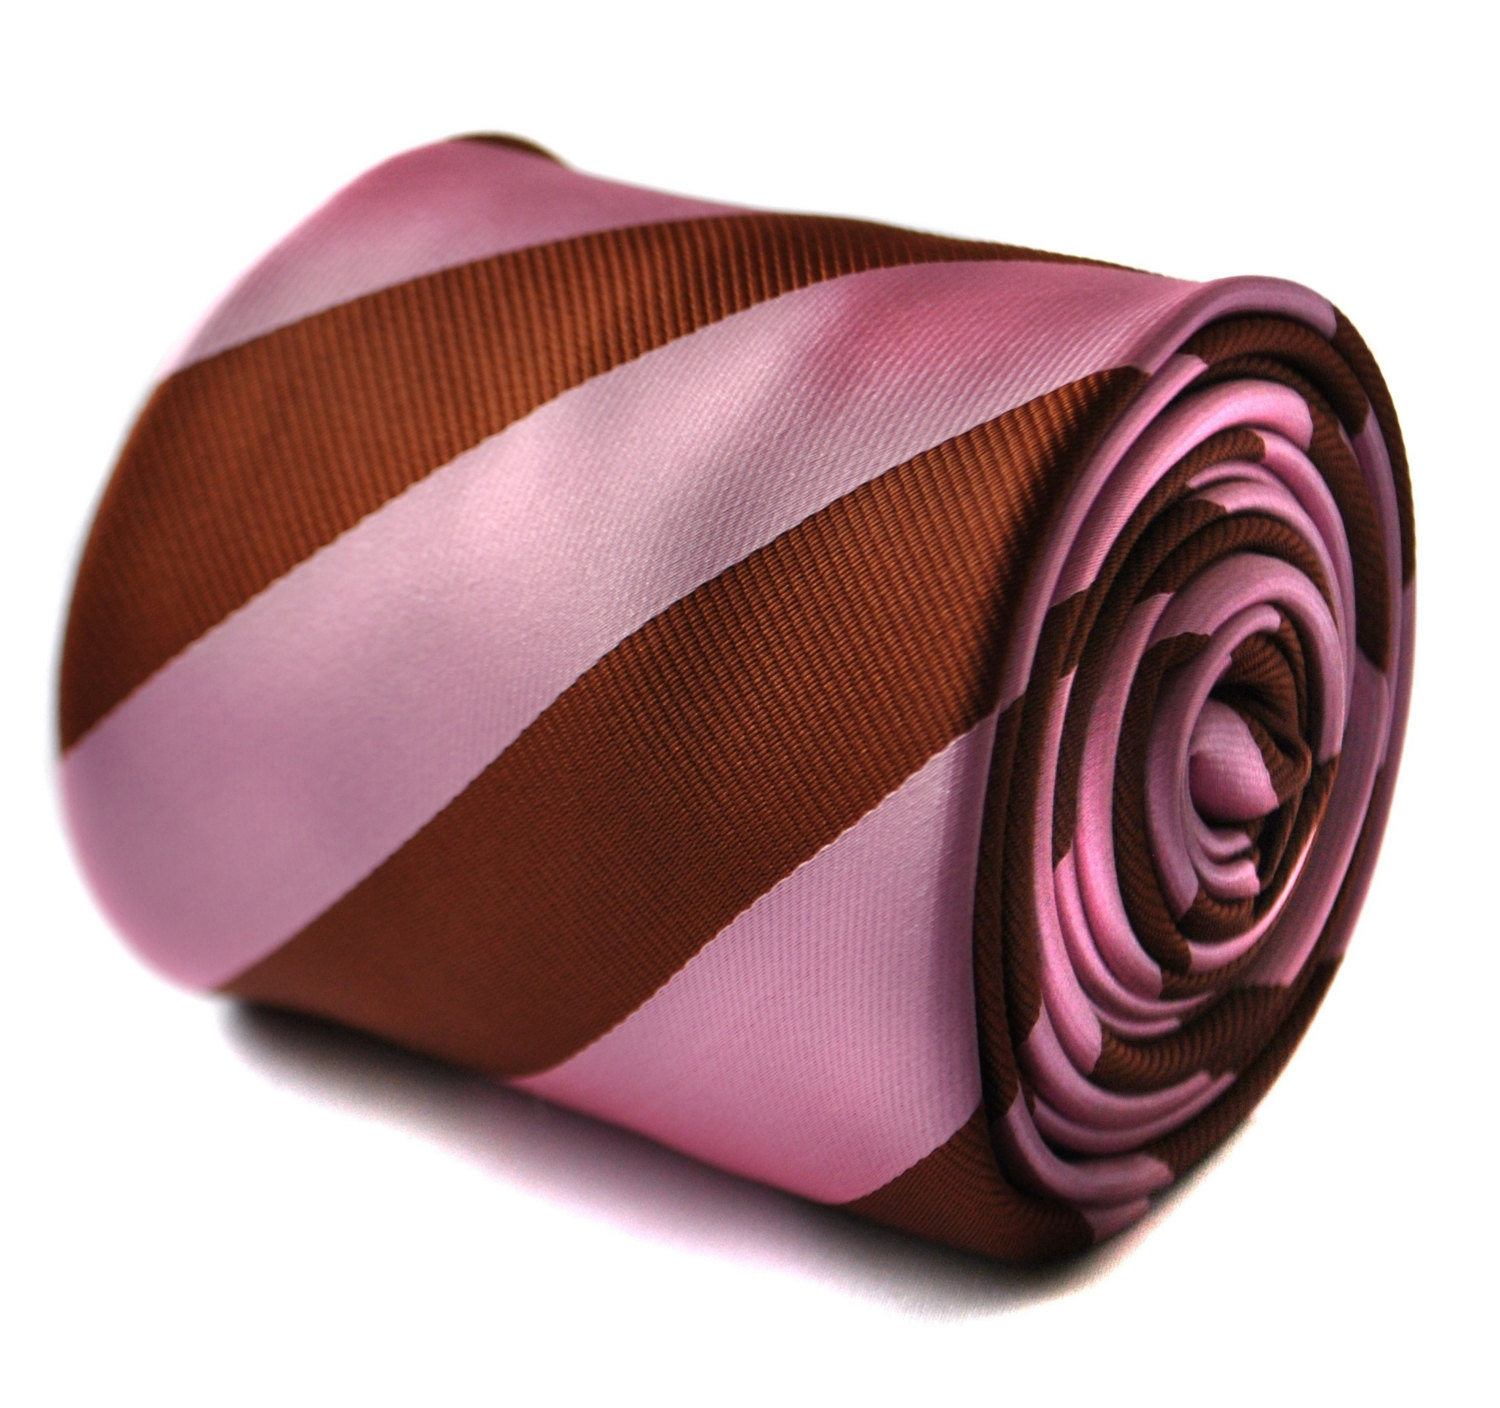 Pink and chocolate brown barber striped tie with floral design to the rear by Fr